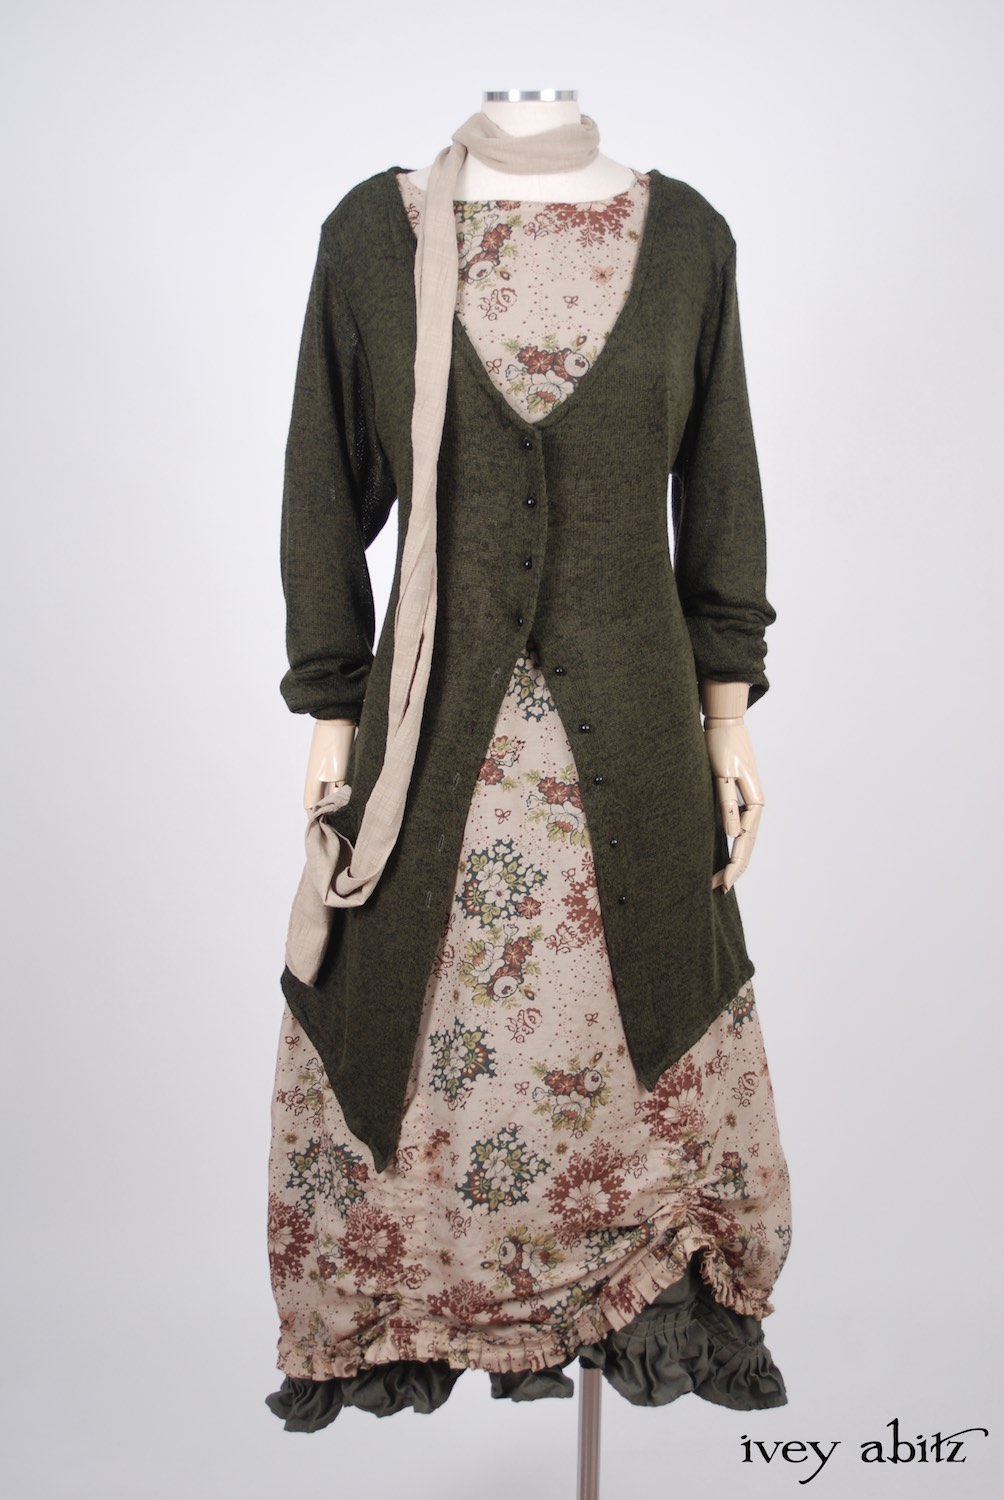 Ivey Abitz - Blanchefleur Sash in Blushed Plaid Voile  - Fairholme Jacket in Morning Meadow/Blackbird Softest Knit - Montmorency Frock in Blushed Meadow Floral Voile, High Water Length - Edenshire Frock in Morning Meadow Yarn Dyed Cotton, Low Water Length